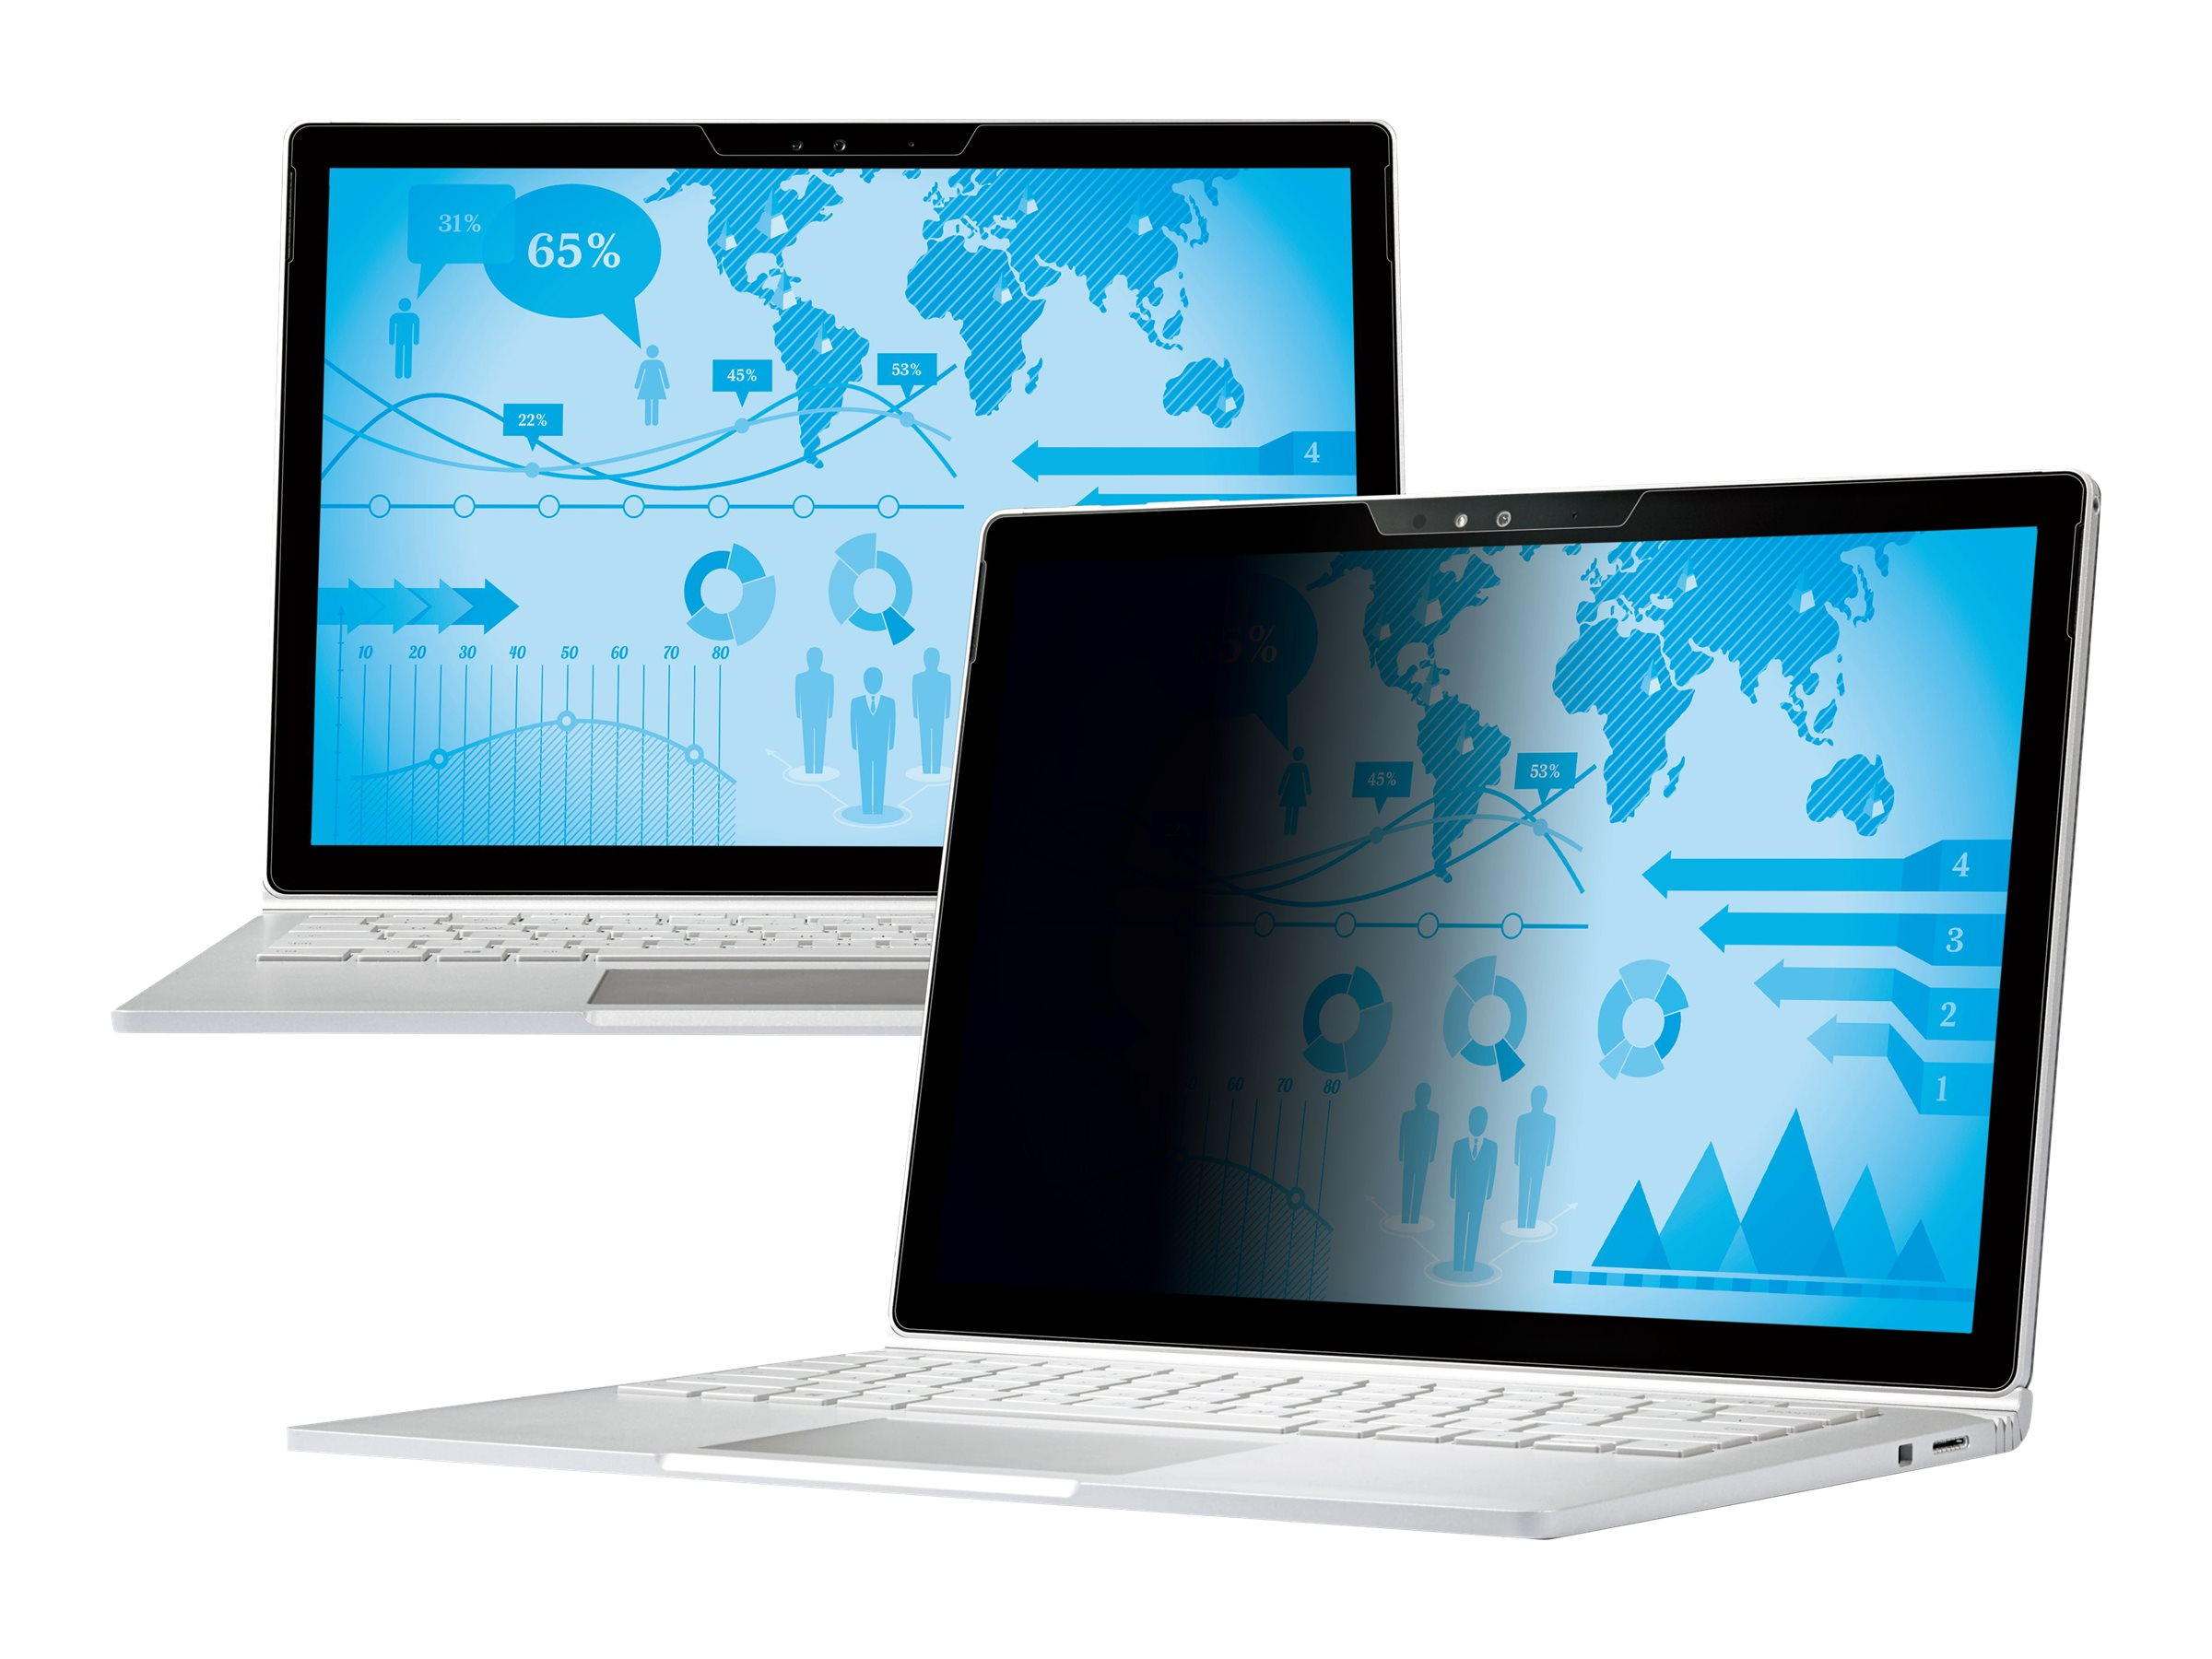 3M Privacy Filter for Microsoft Surface Book, Landscape, PFNMS001, 31239911, Glare Filters & Privacy Screens